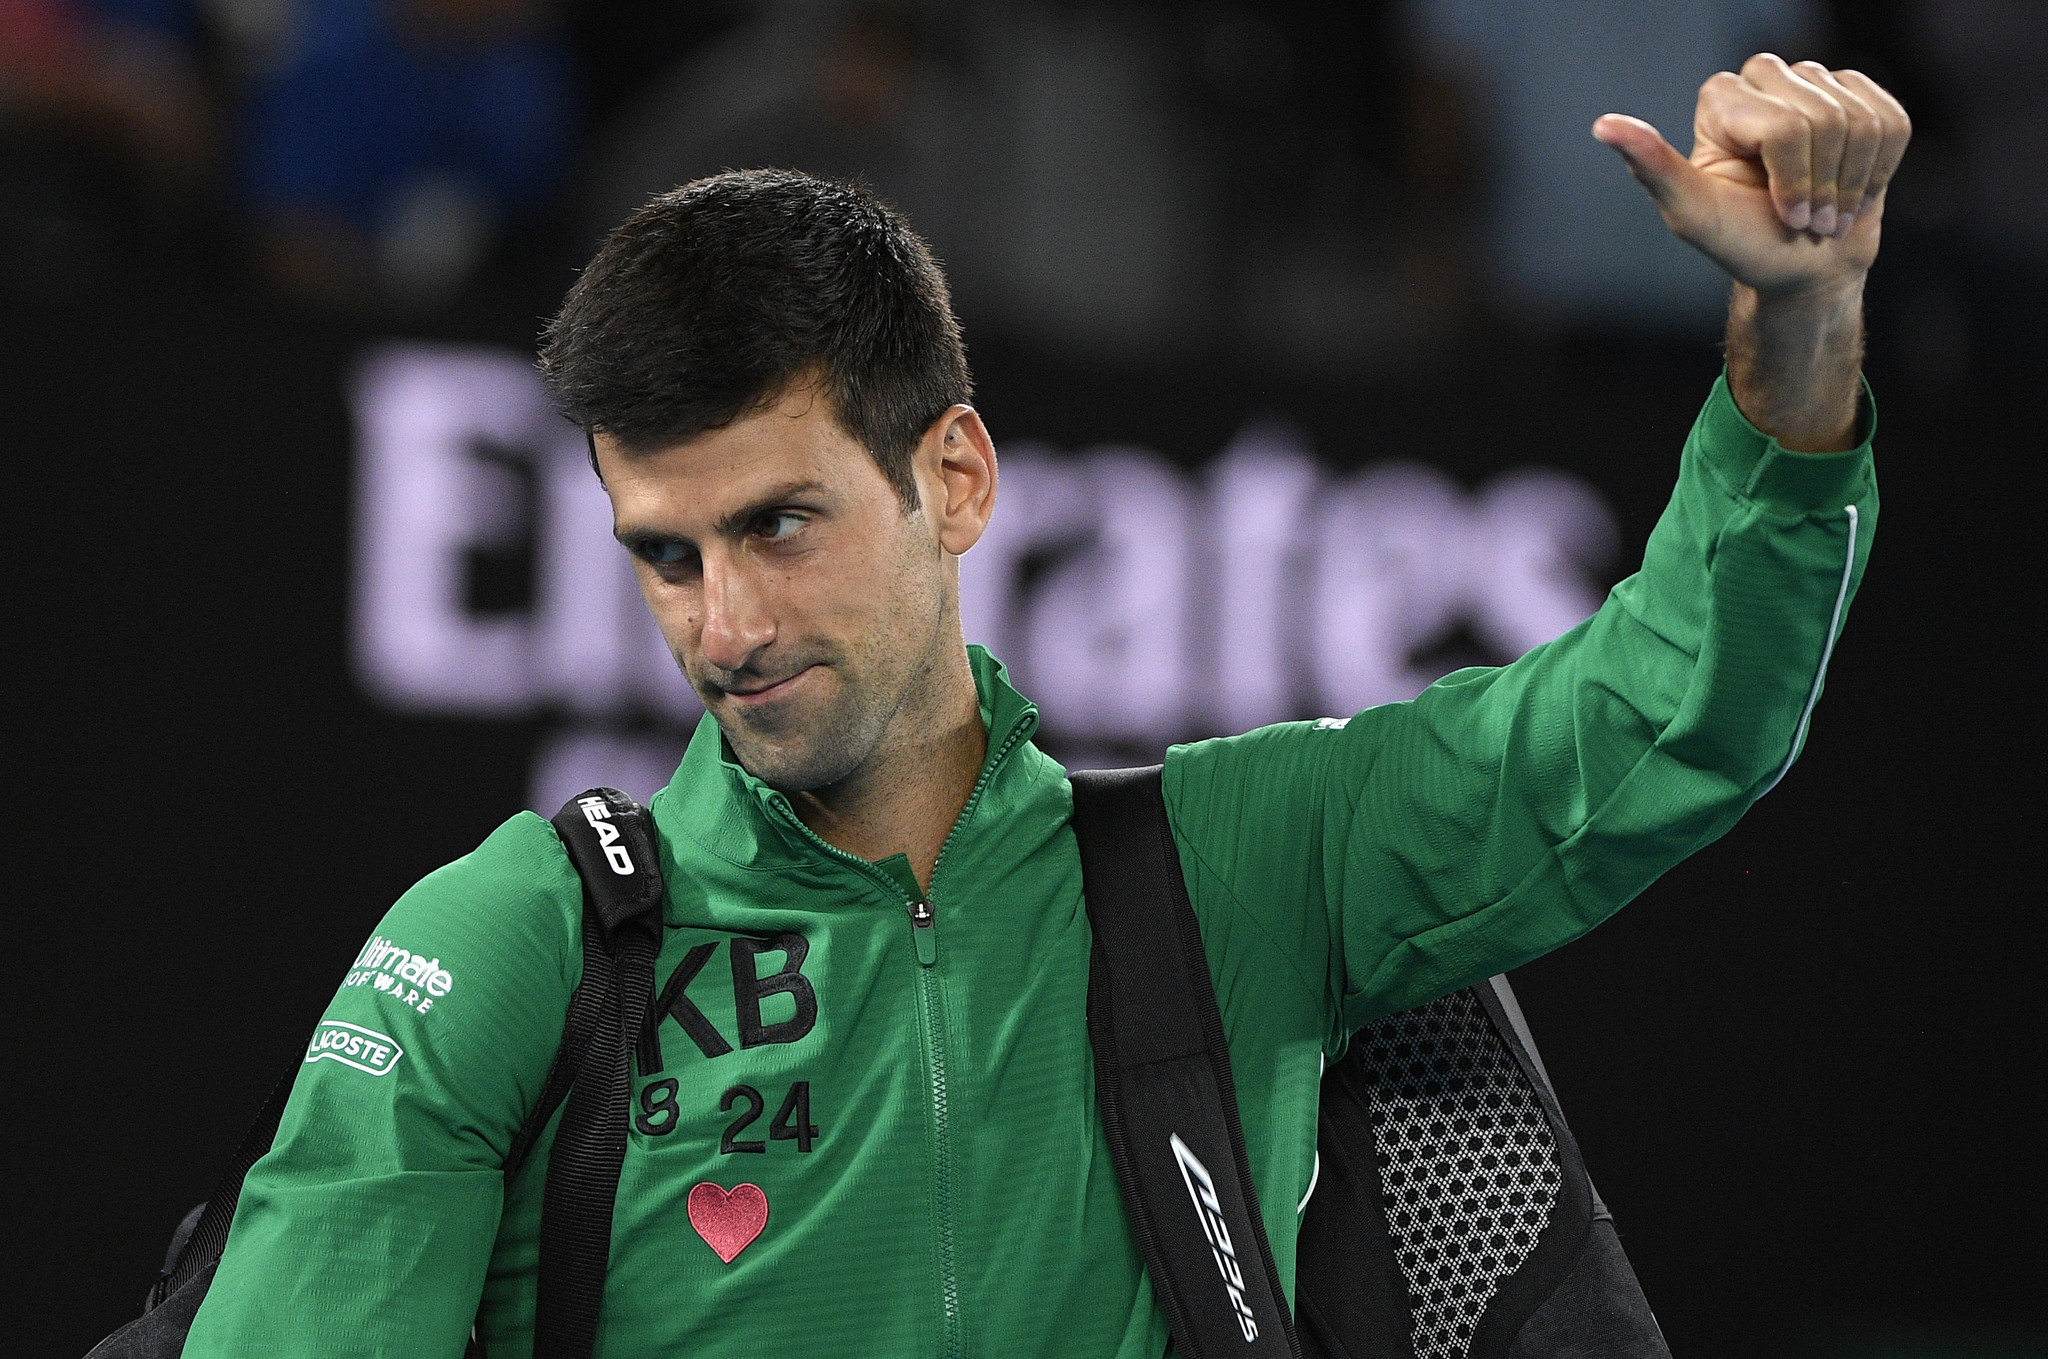 Kobe Bryant's star power was global: Novak Djokovic the latest to get emotional talking about his relationship with NBA legend